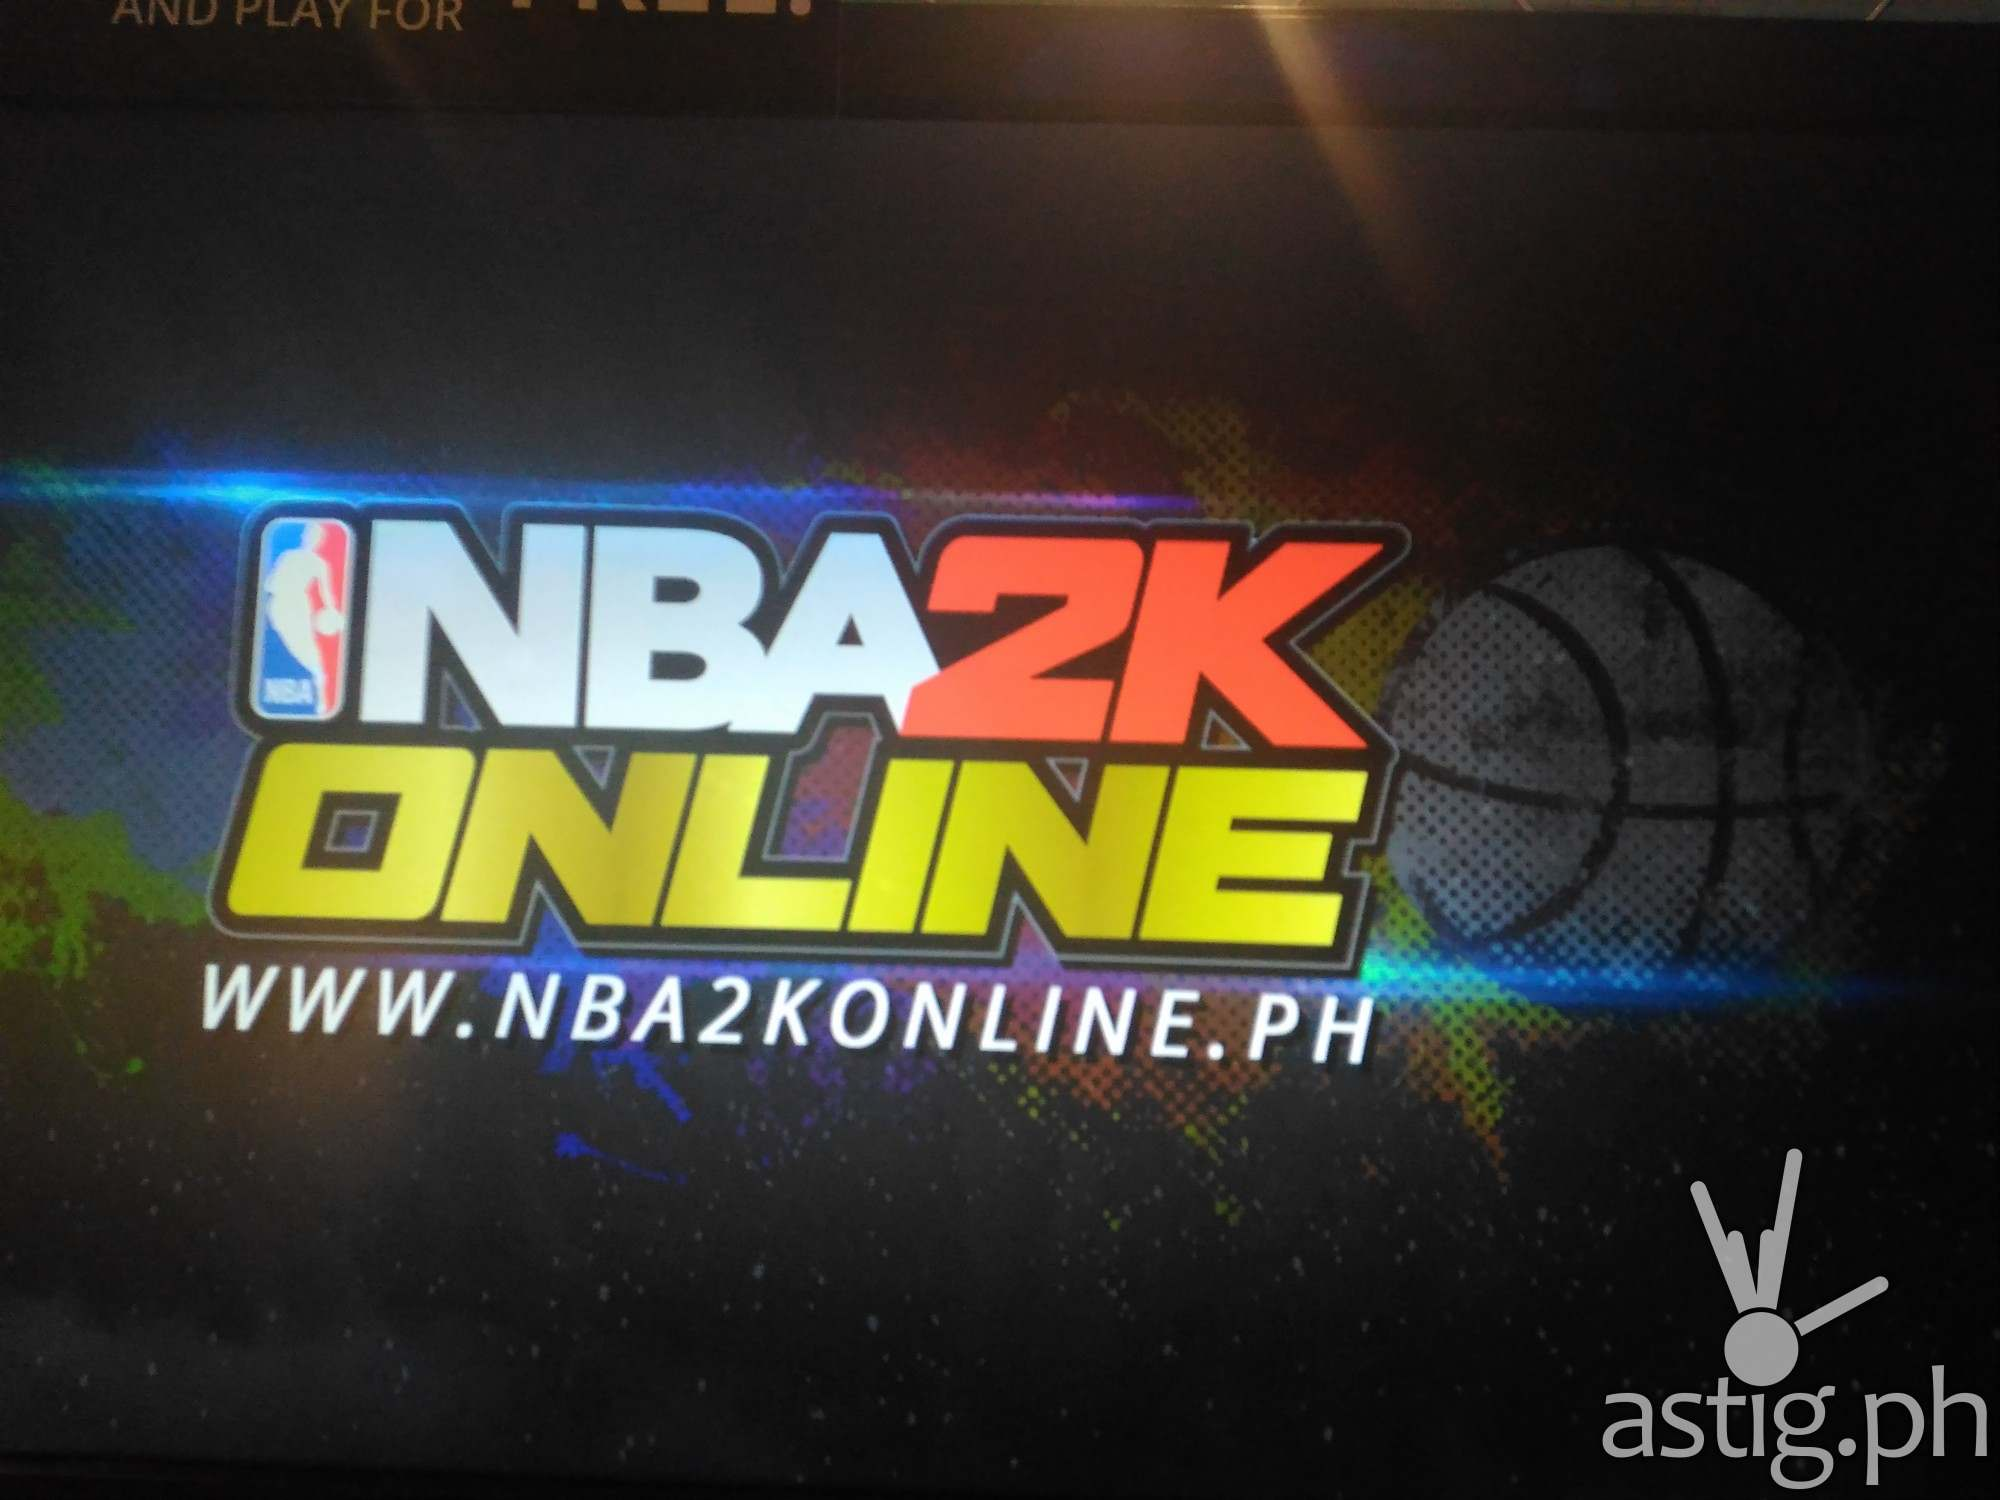 nba2k online_NBA 2K Online officially released in the philippines | ASTIG.PH